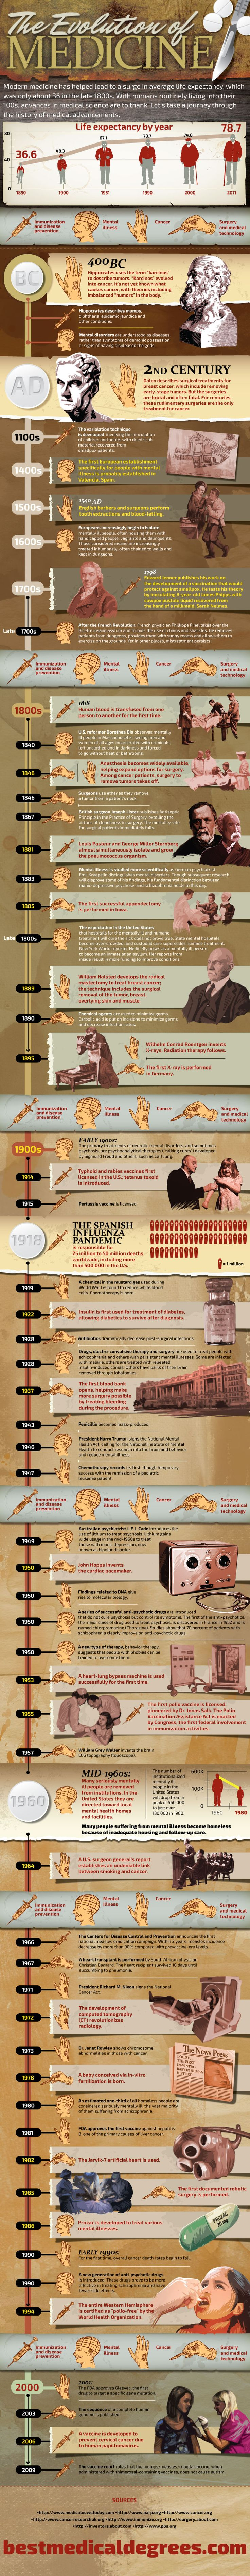 Infographic: The Evolution of Medicine